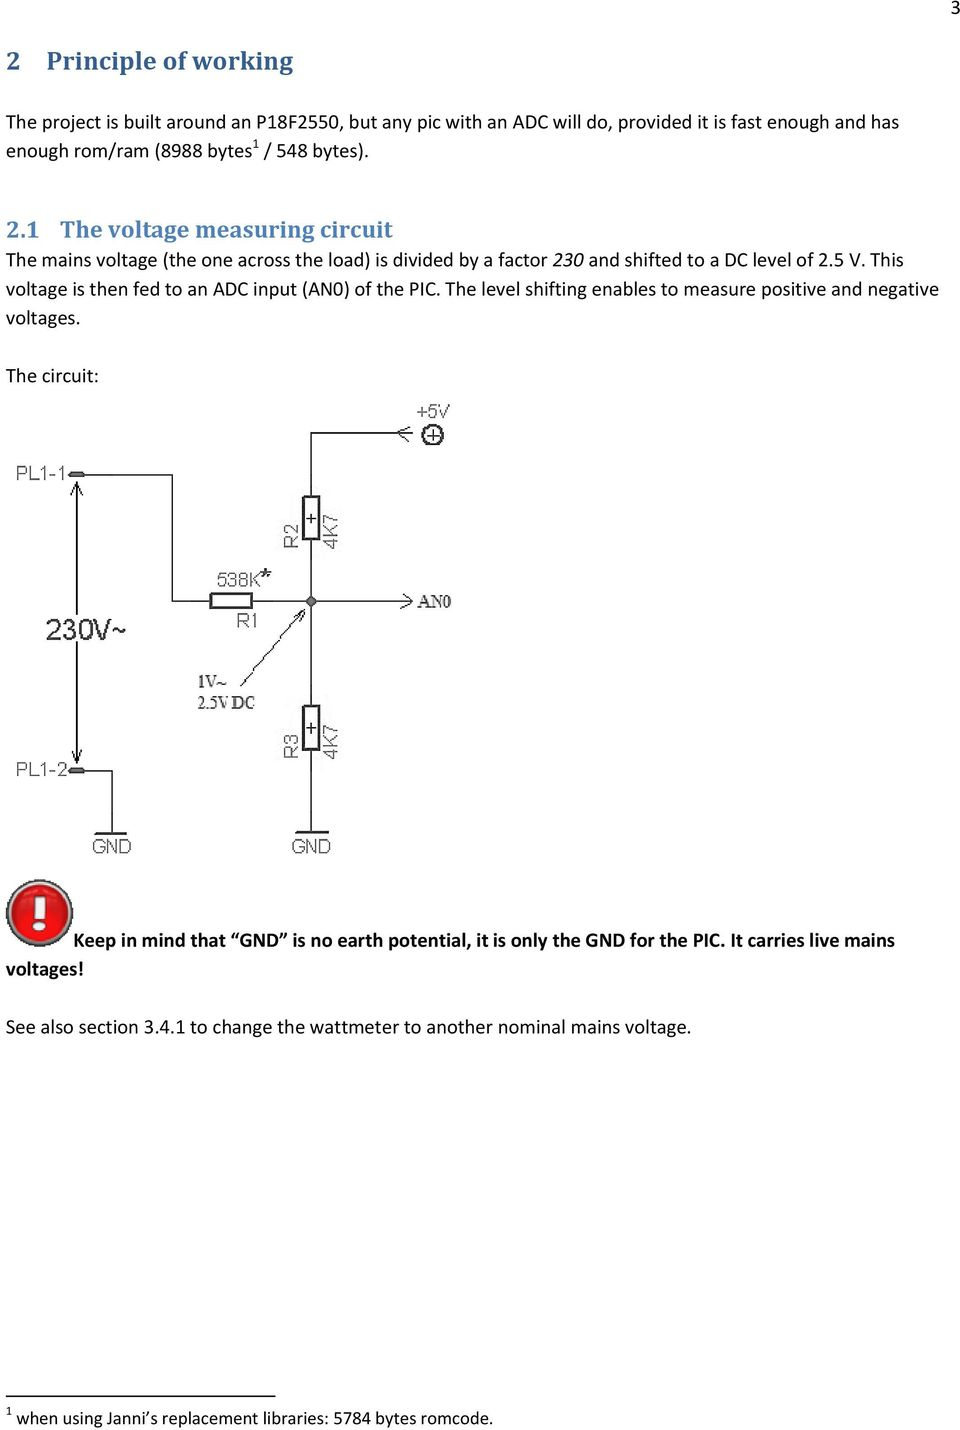 Ac Watt Meter Project Pdf 32w Hifi Audio Amplifier With Tda2050 Circuit Diagram The Keep In Mind That Gnd Is No Earth Potential It Only